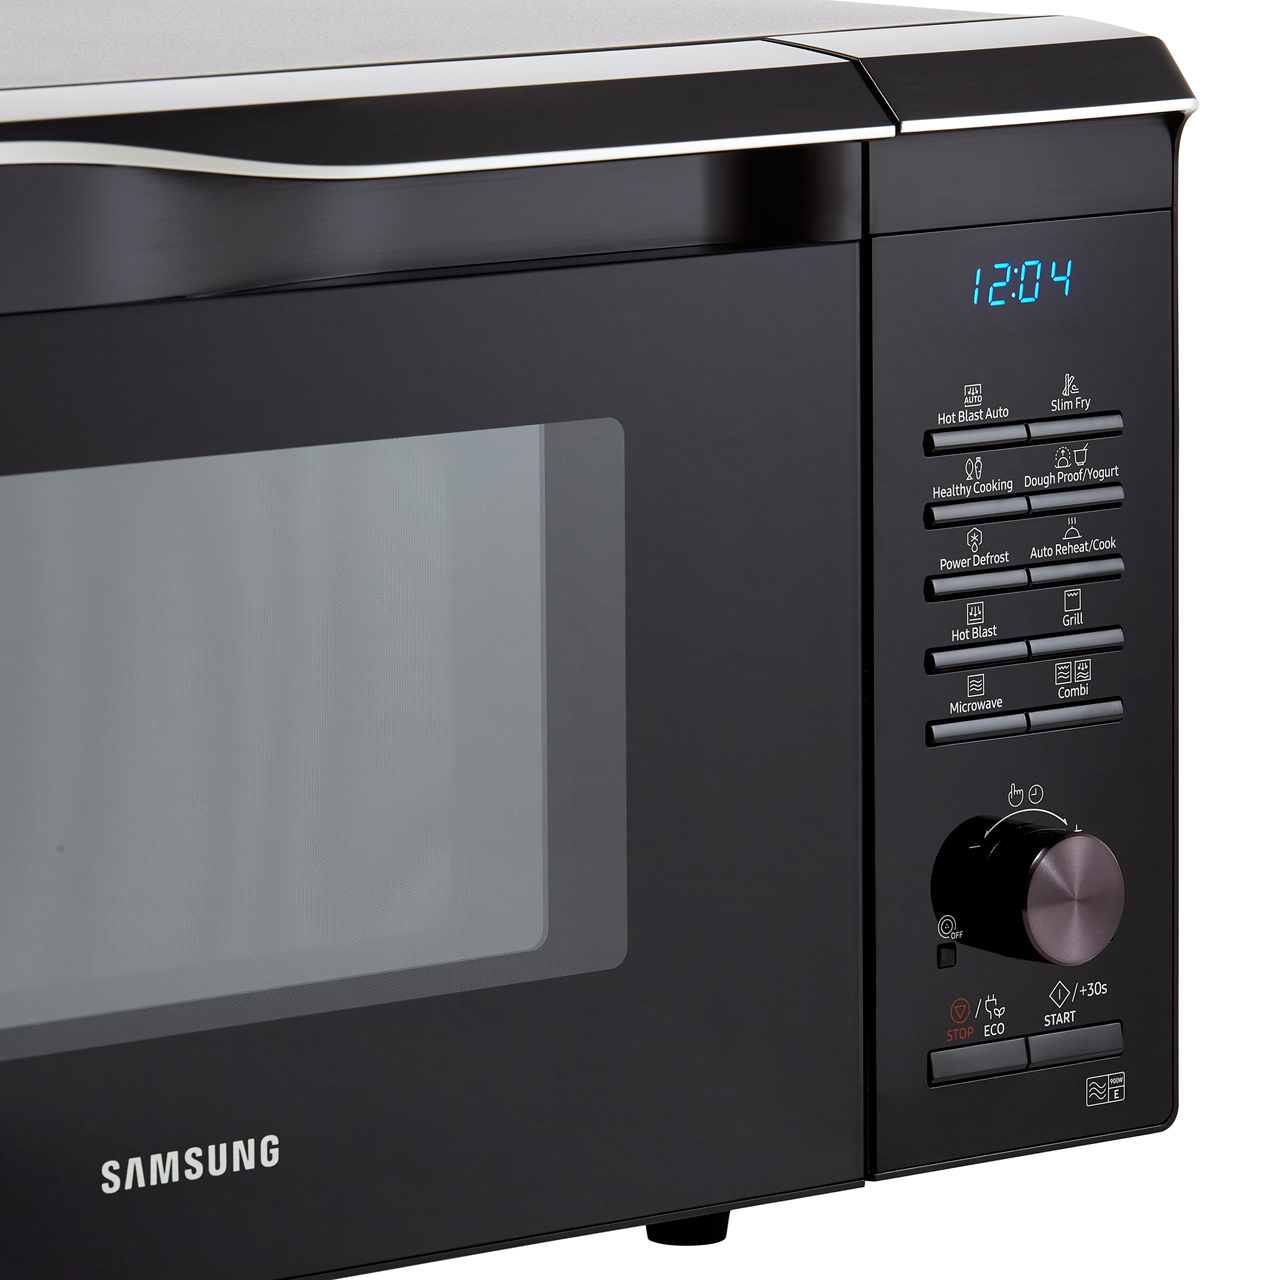 Samsung Mc28m6055ck Easy View 900 Watt Free Standing